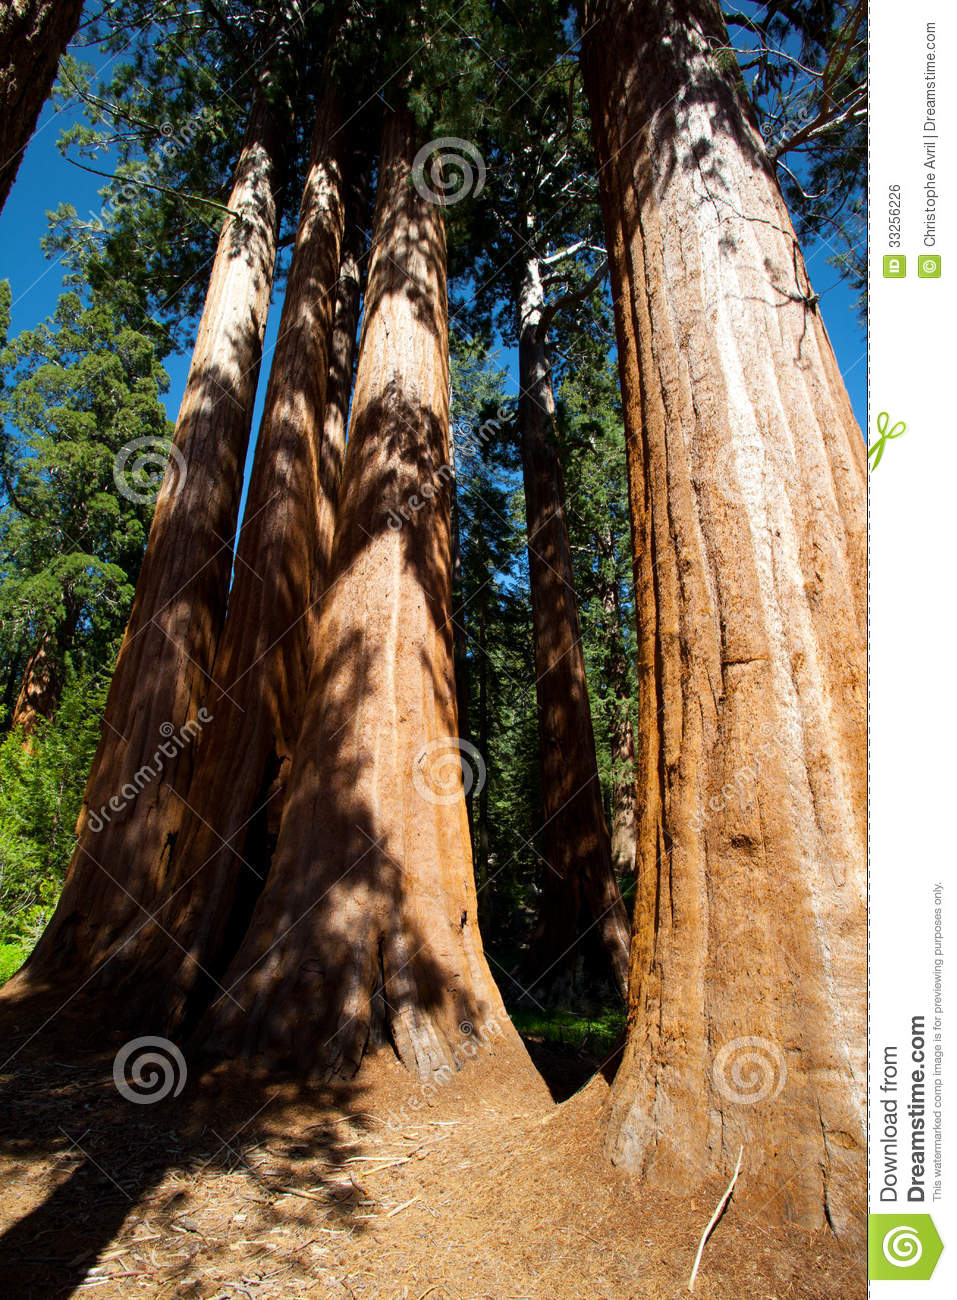 - sequoia-tree-trunk-yosemite-national-park-33256226